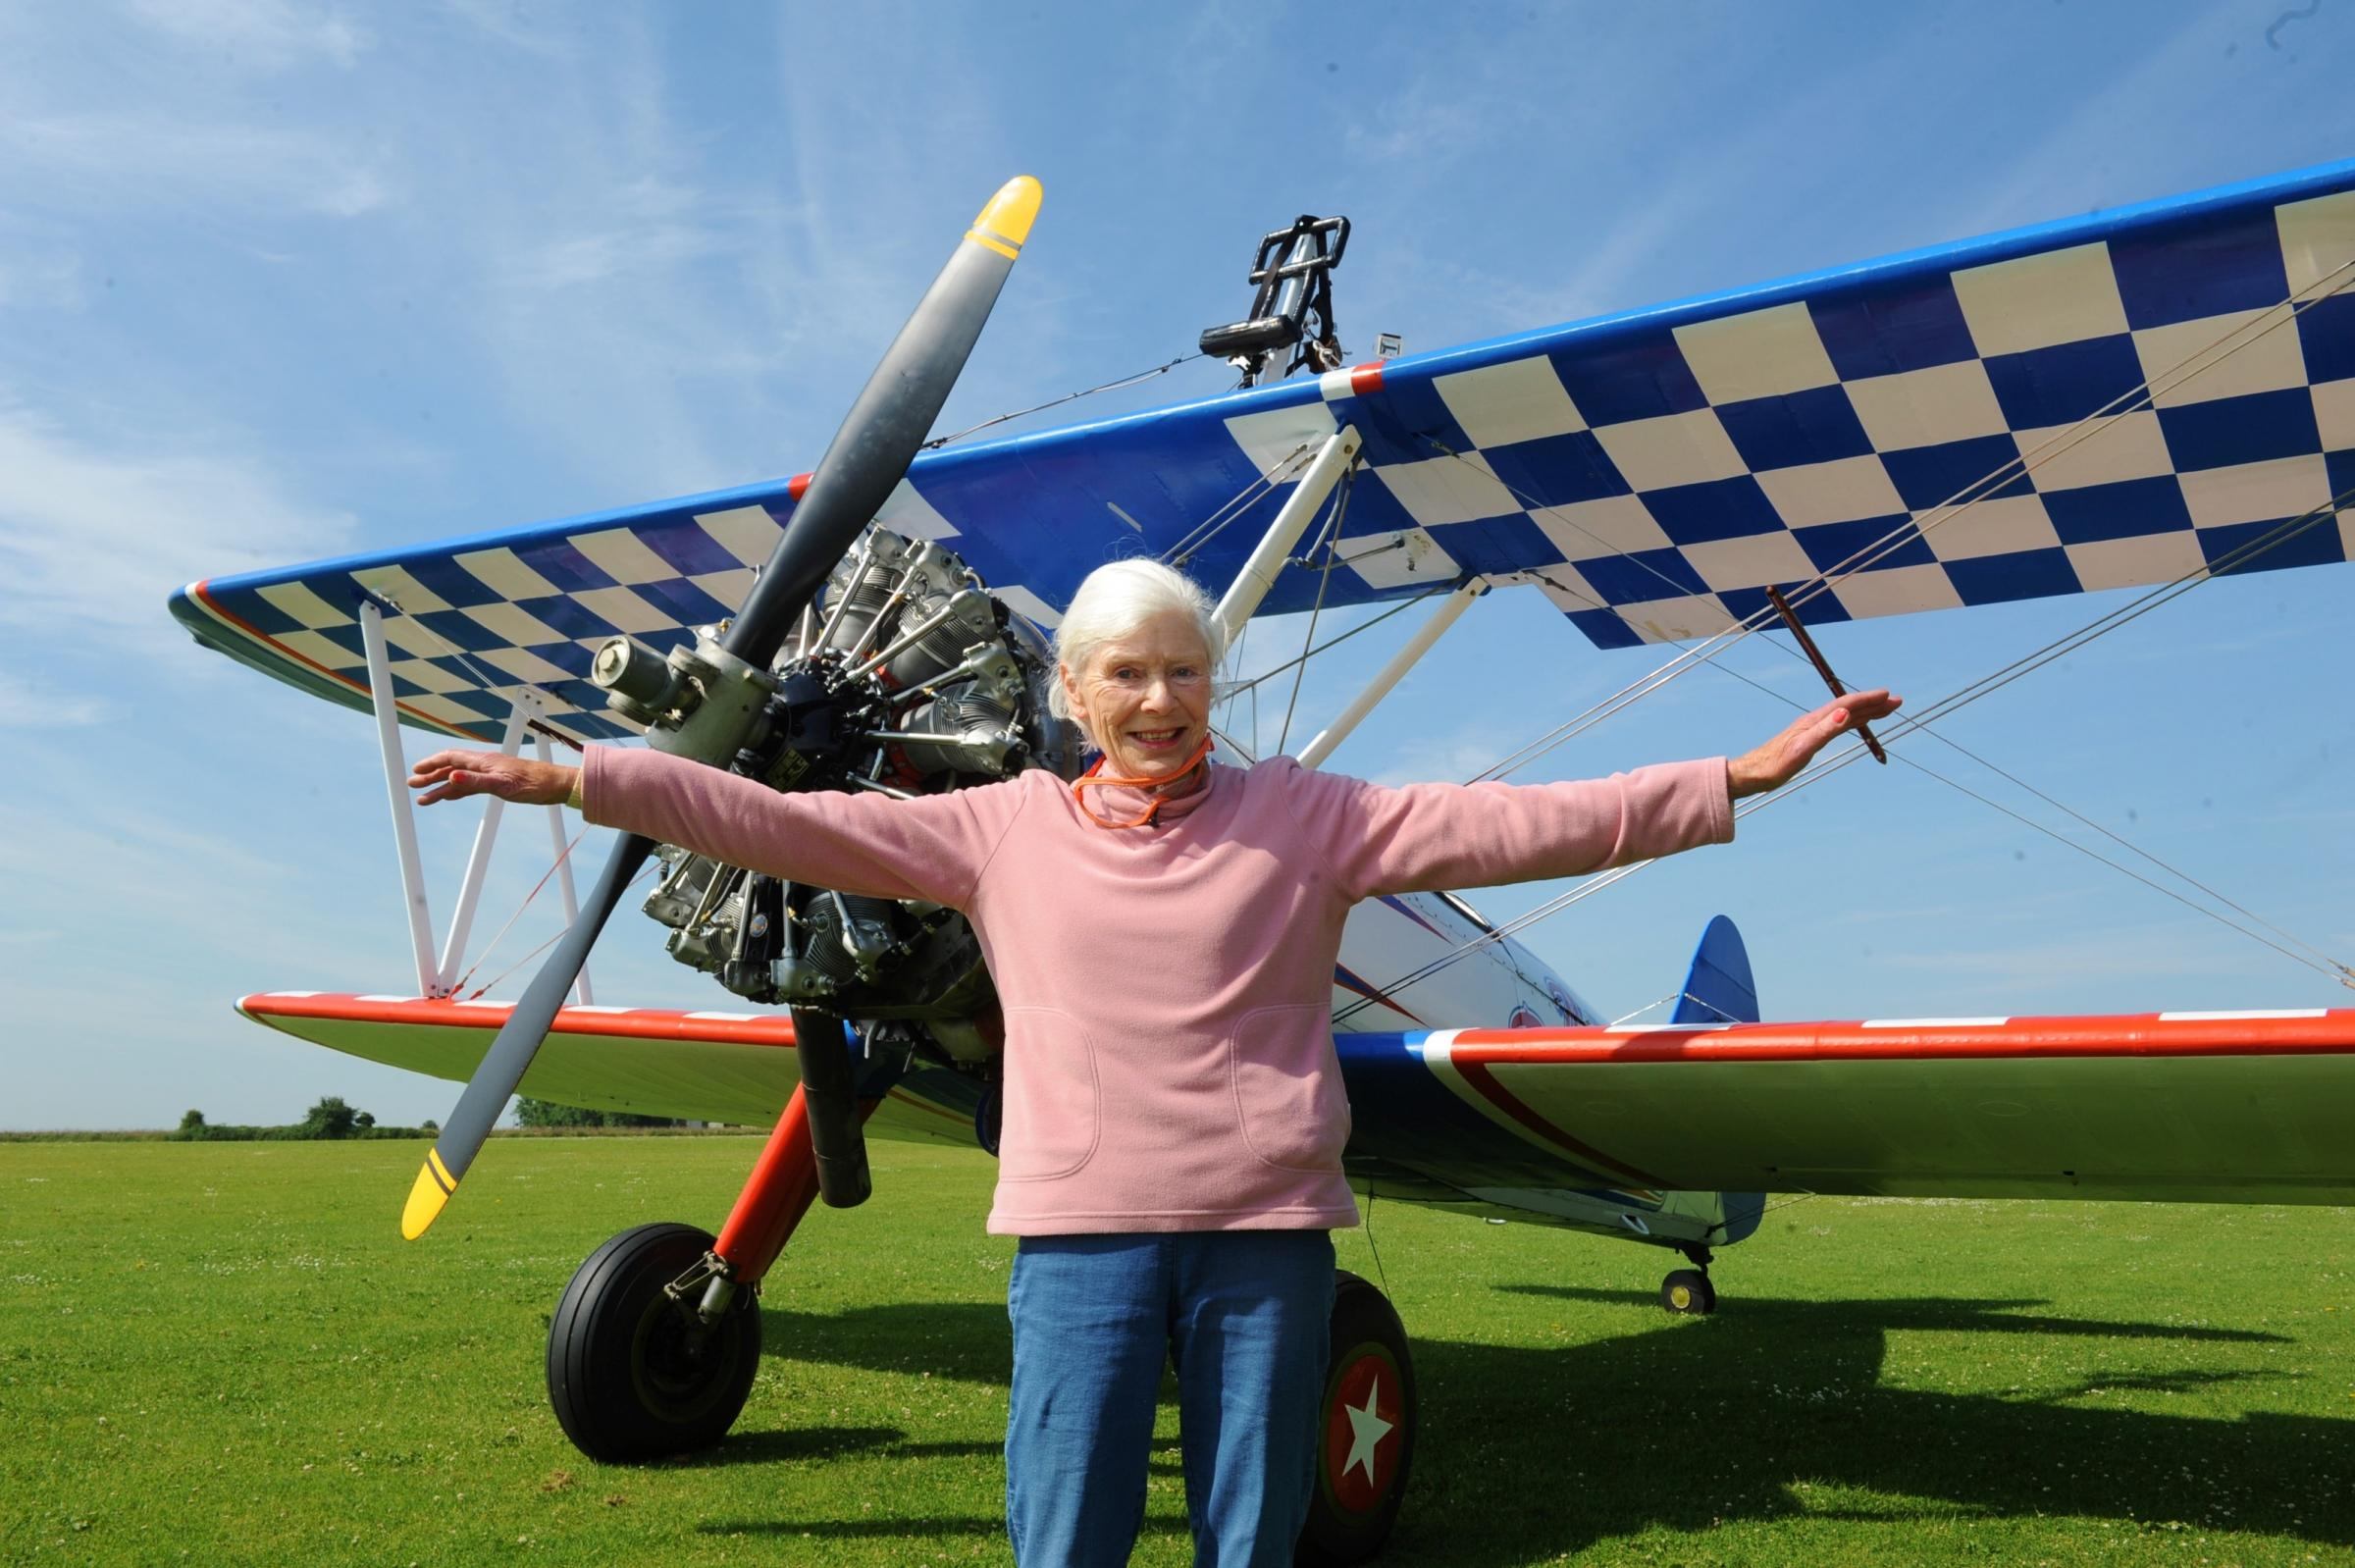 82-year-old adrenaline junkie takes on Rendcomb wingwalking challenge